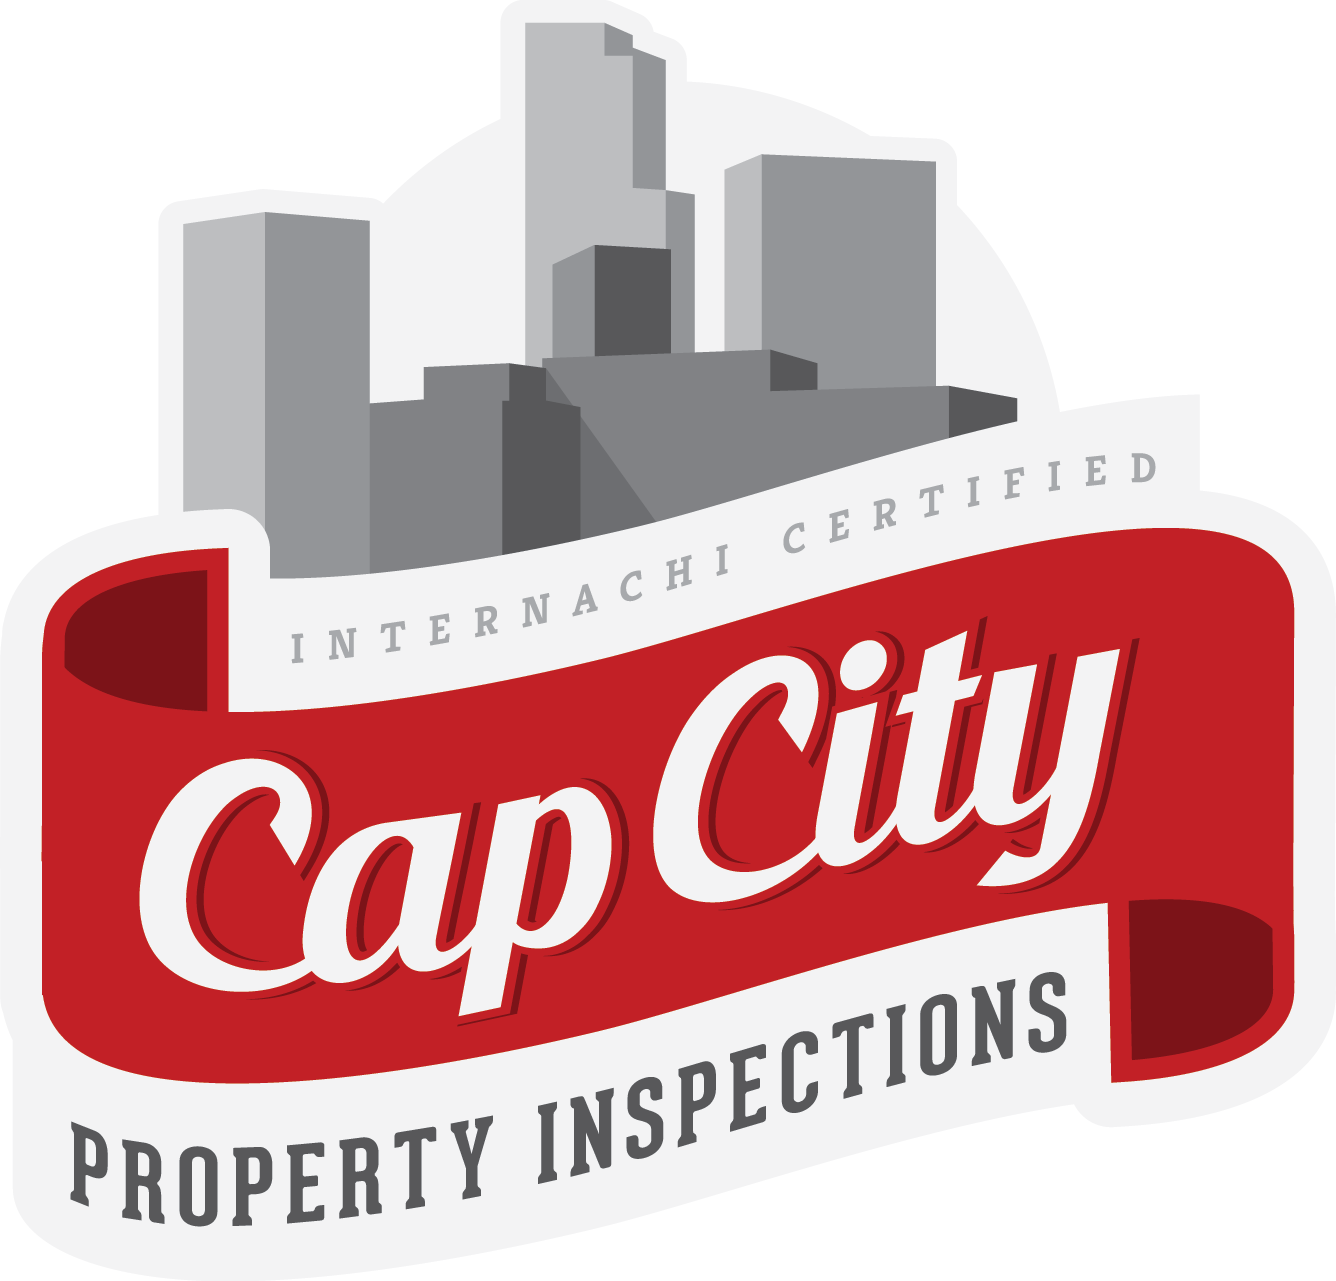 Cap City Property Inspections